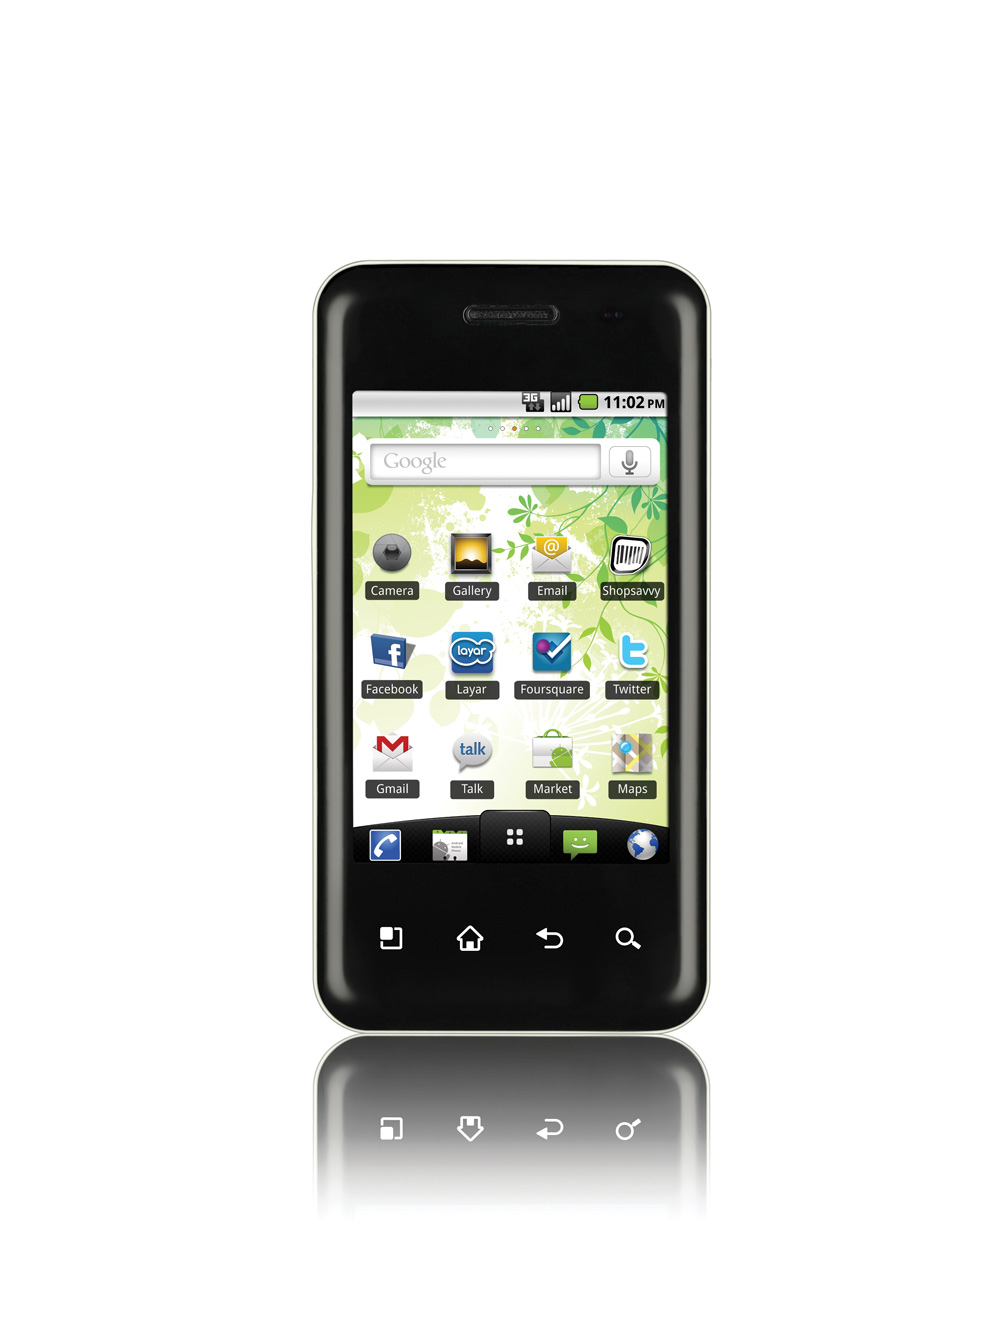 Front view of the LG Optimus Chic